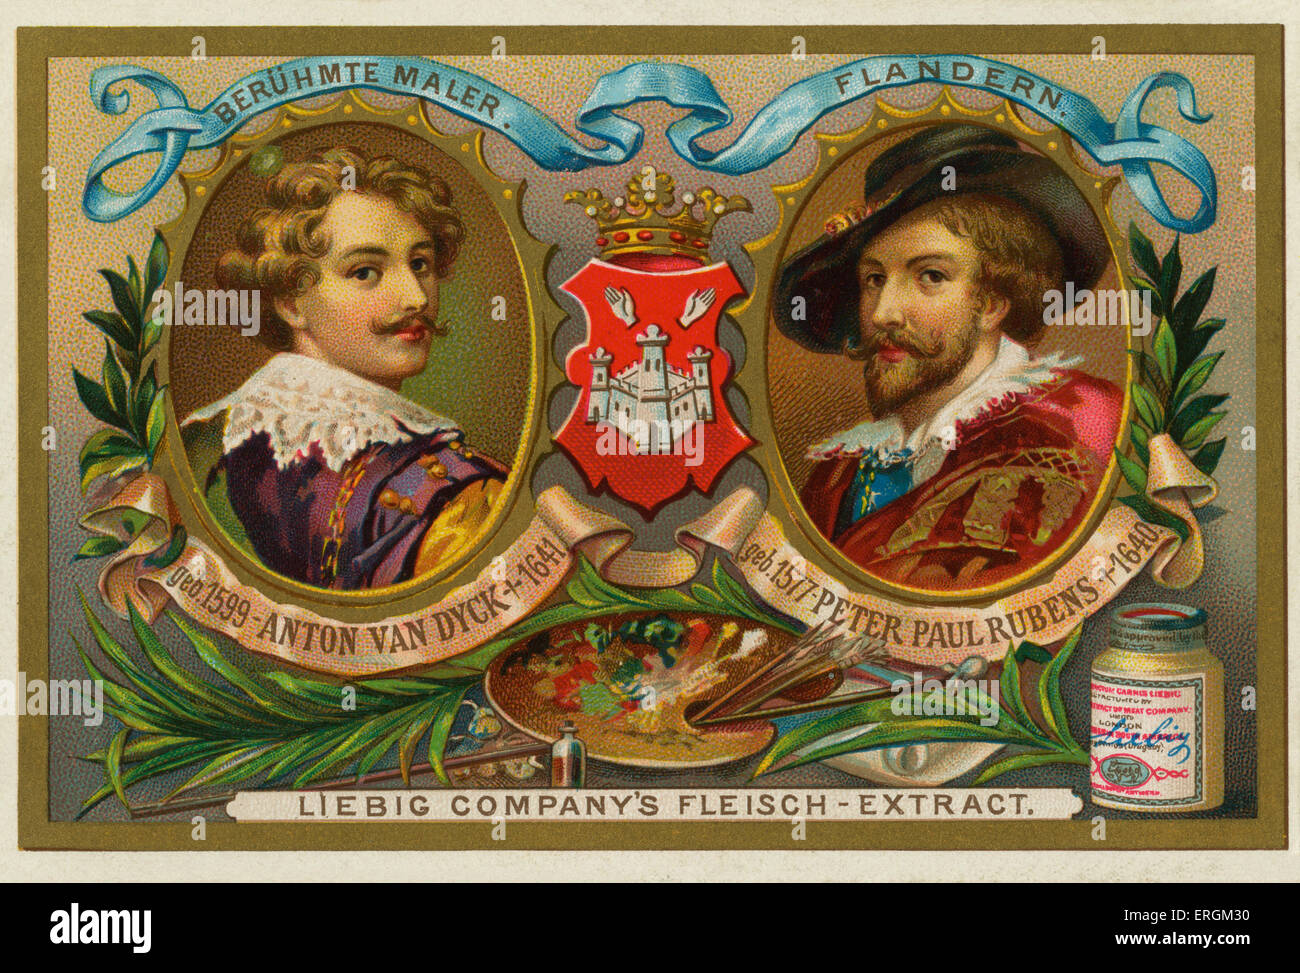 Anton van Dyck (1599-1641) and Peter Paul Rubens (1577-1640) - famous Flemish baroque artists. Liebig card, famous - Stock Image